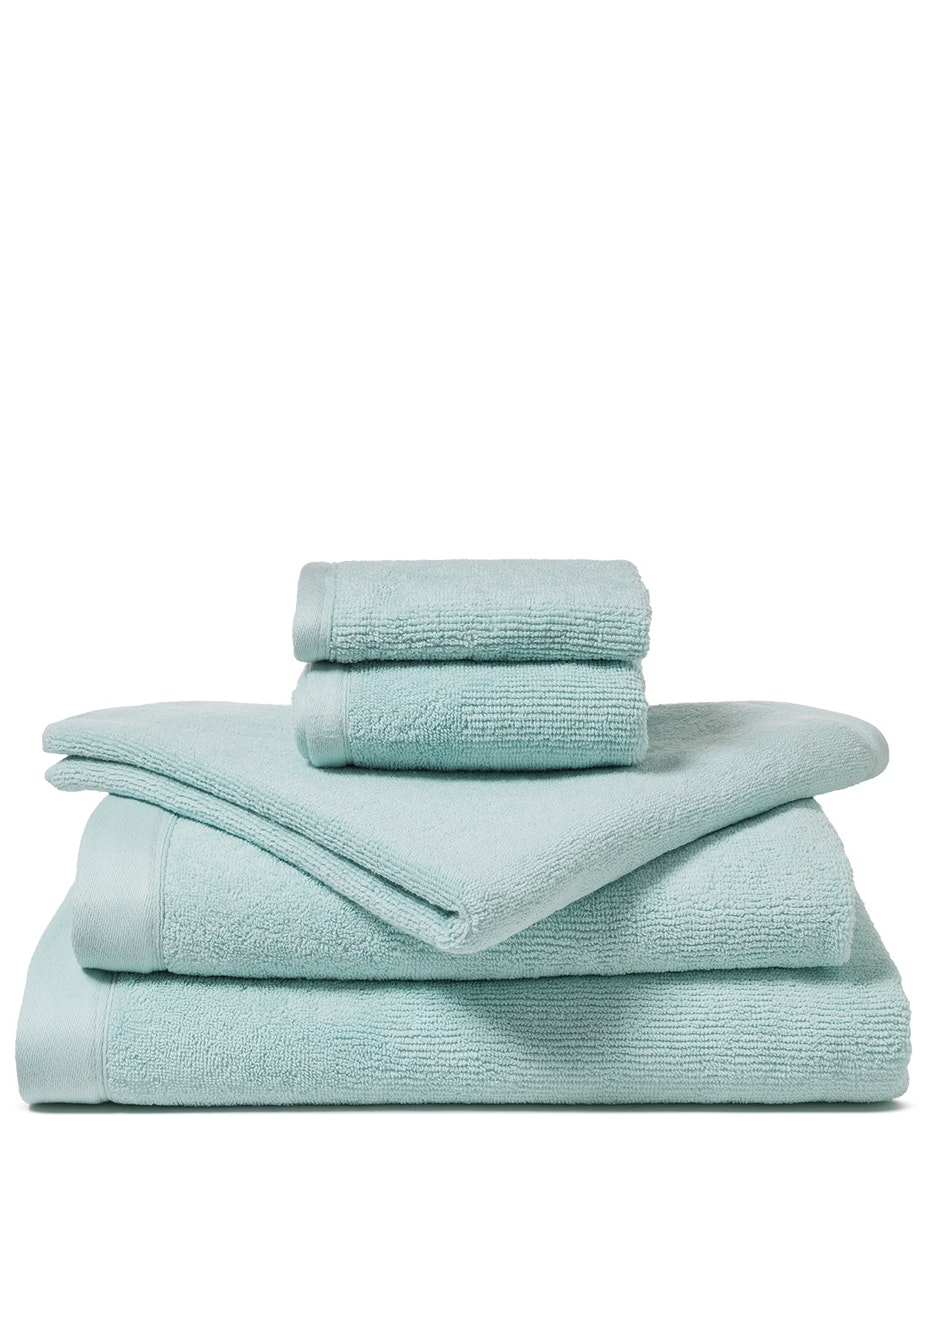 Canningvale - Corduroy Rib Bath Towel Ice Blue